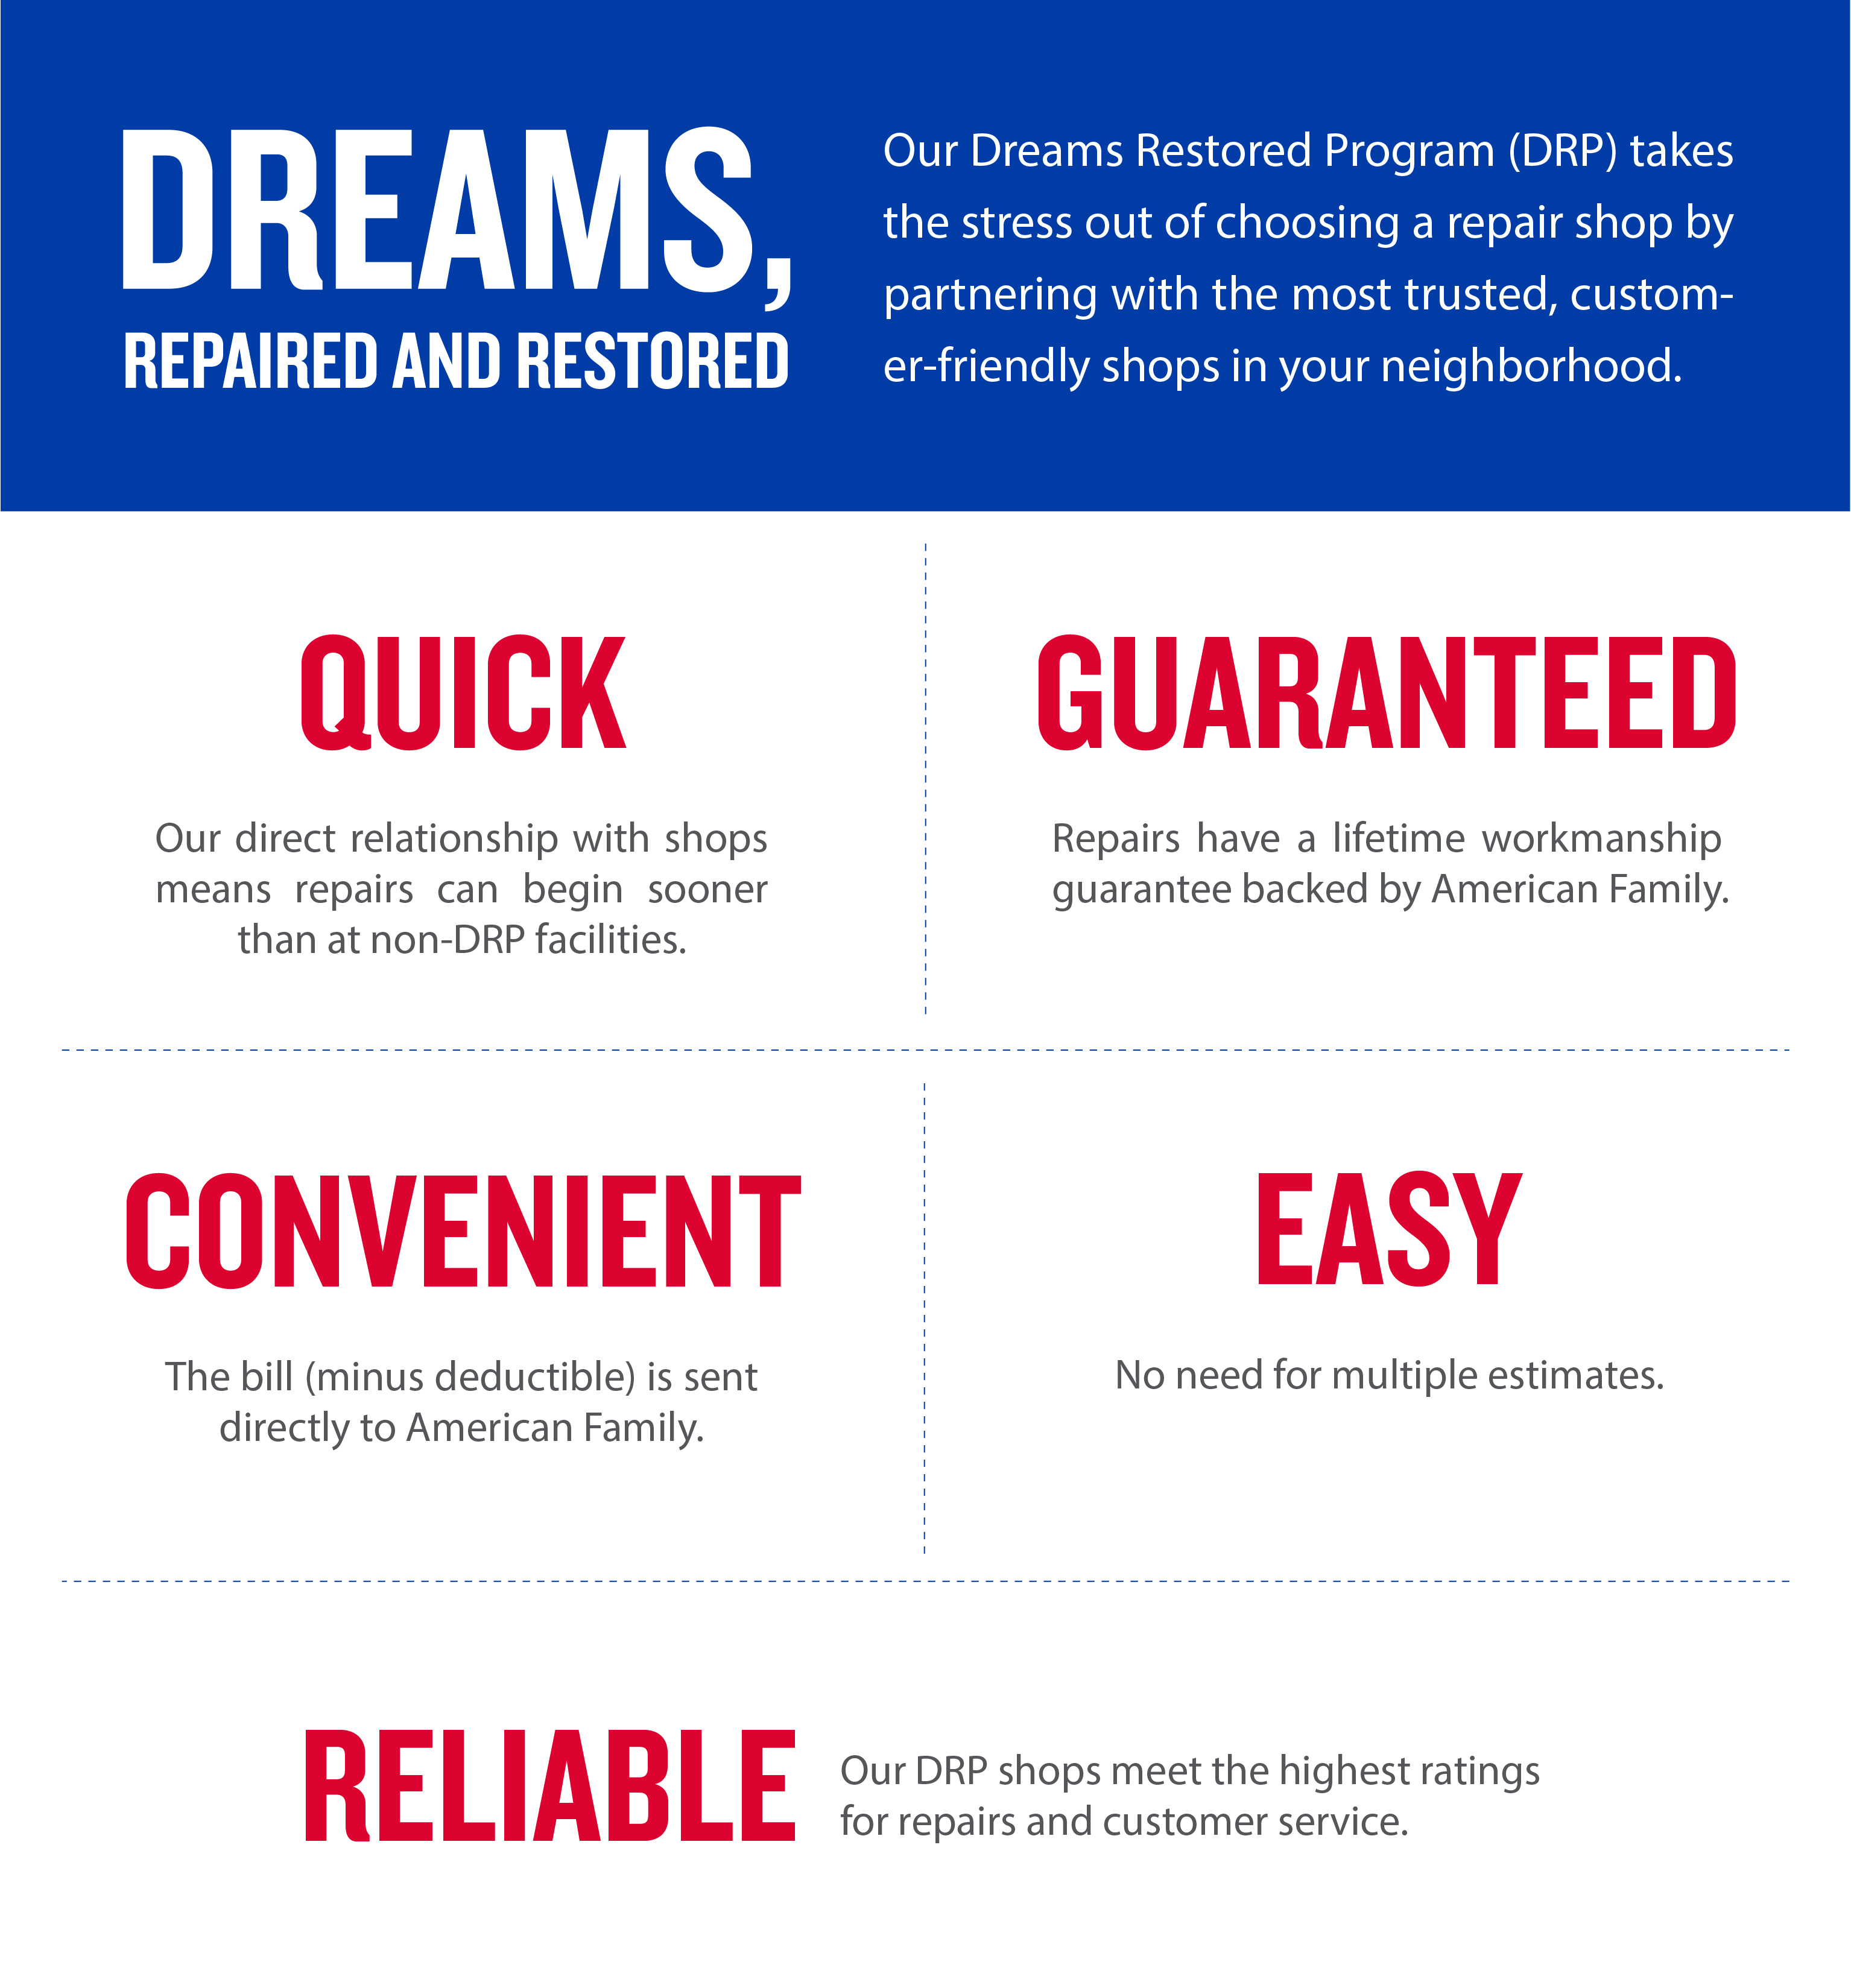 Dreams restored infographic